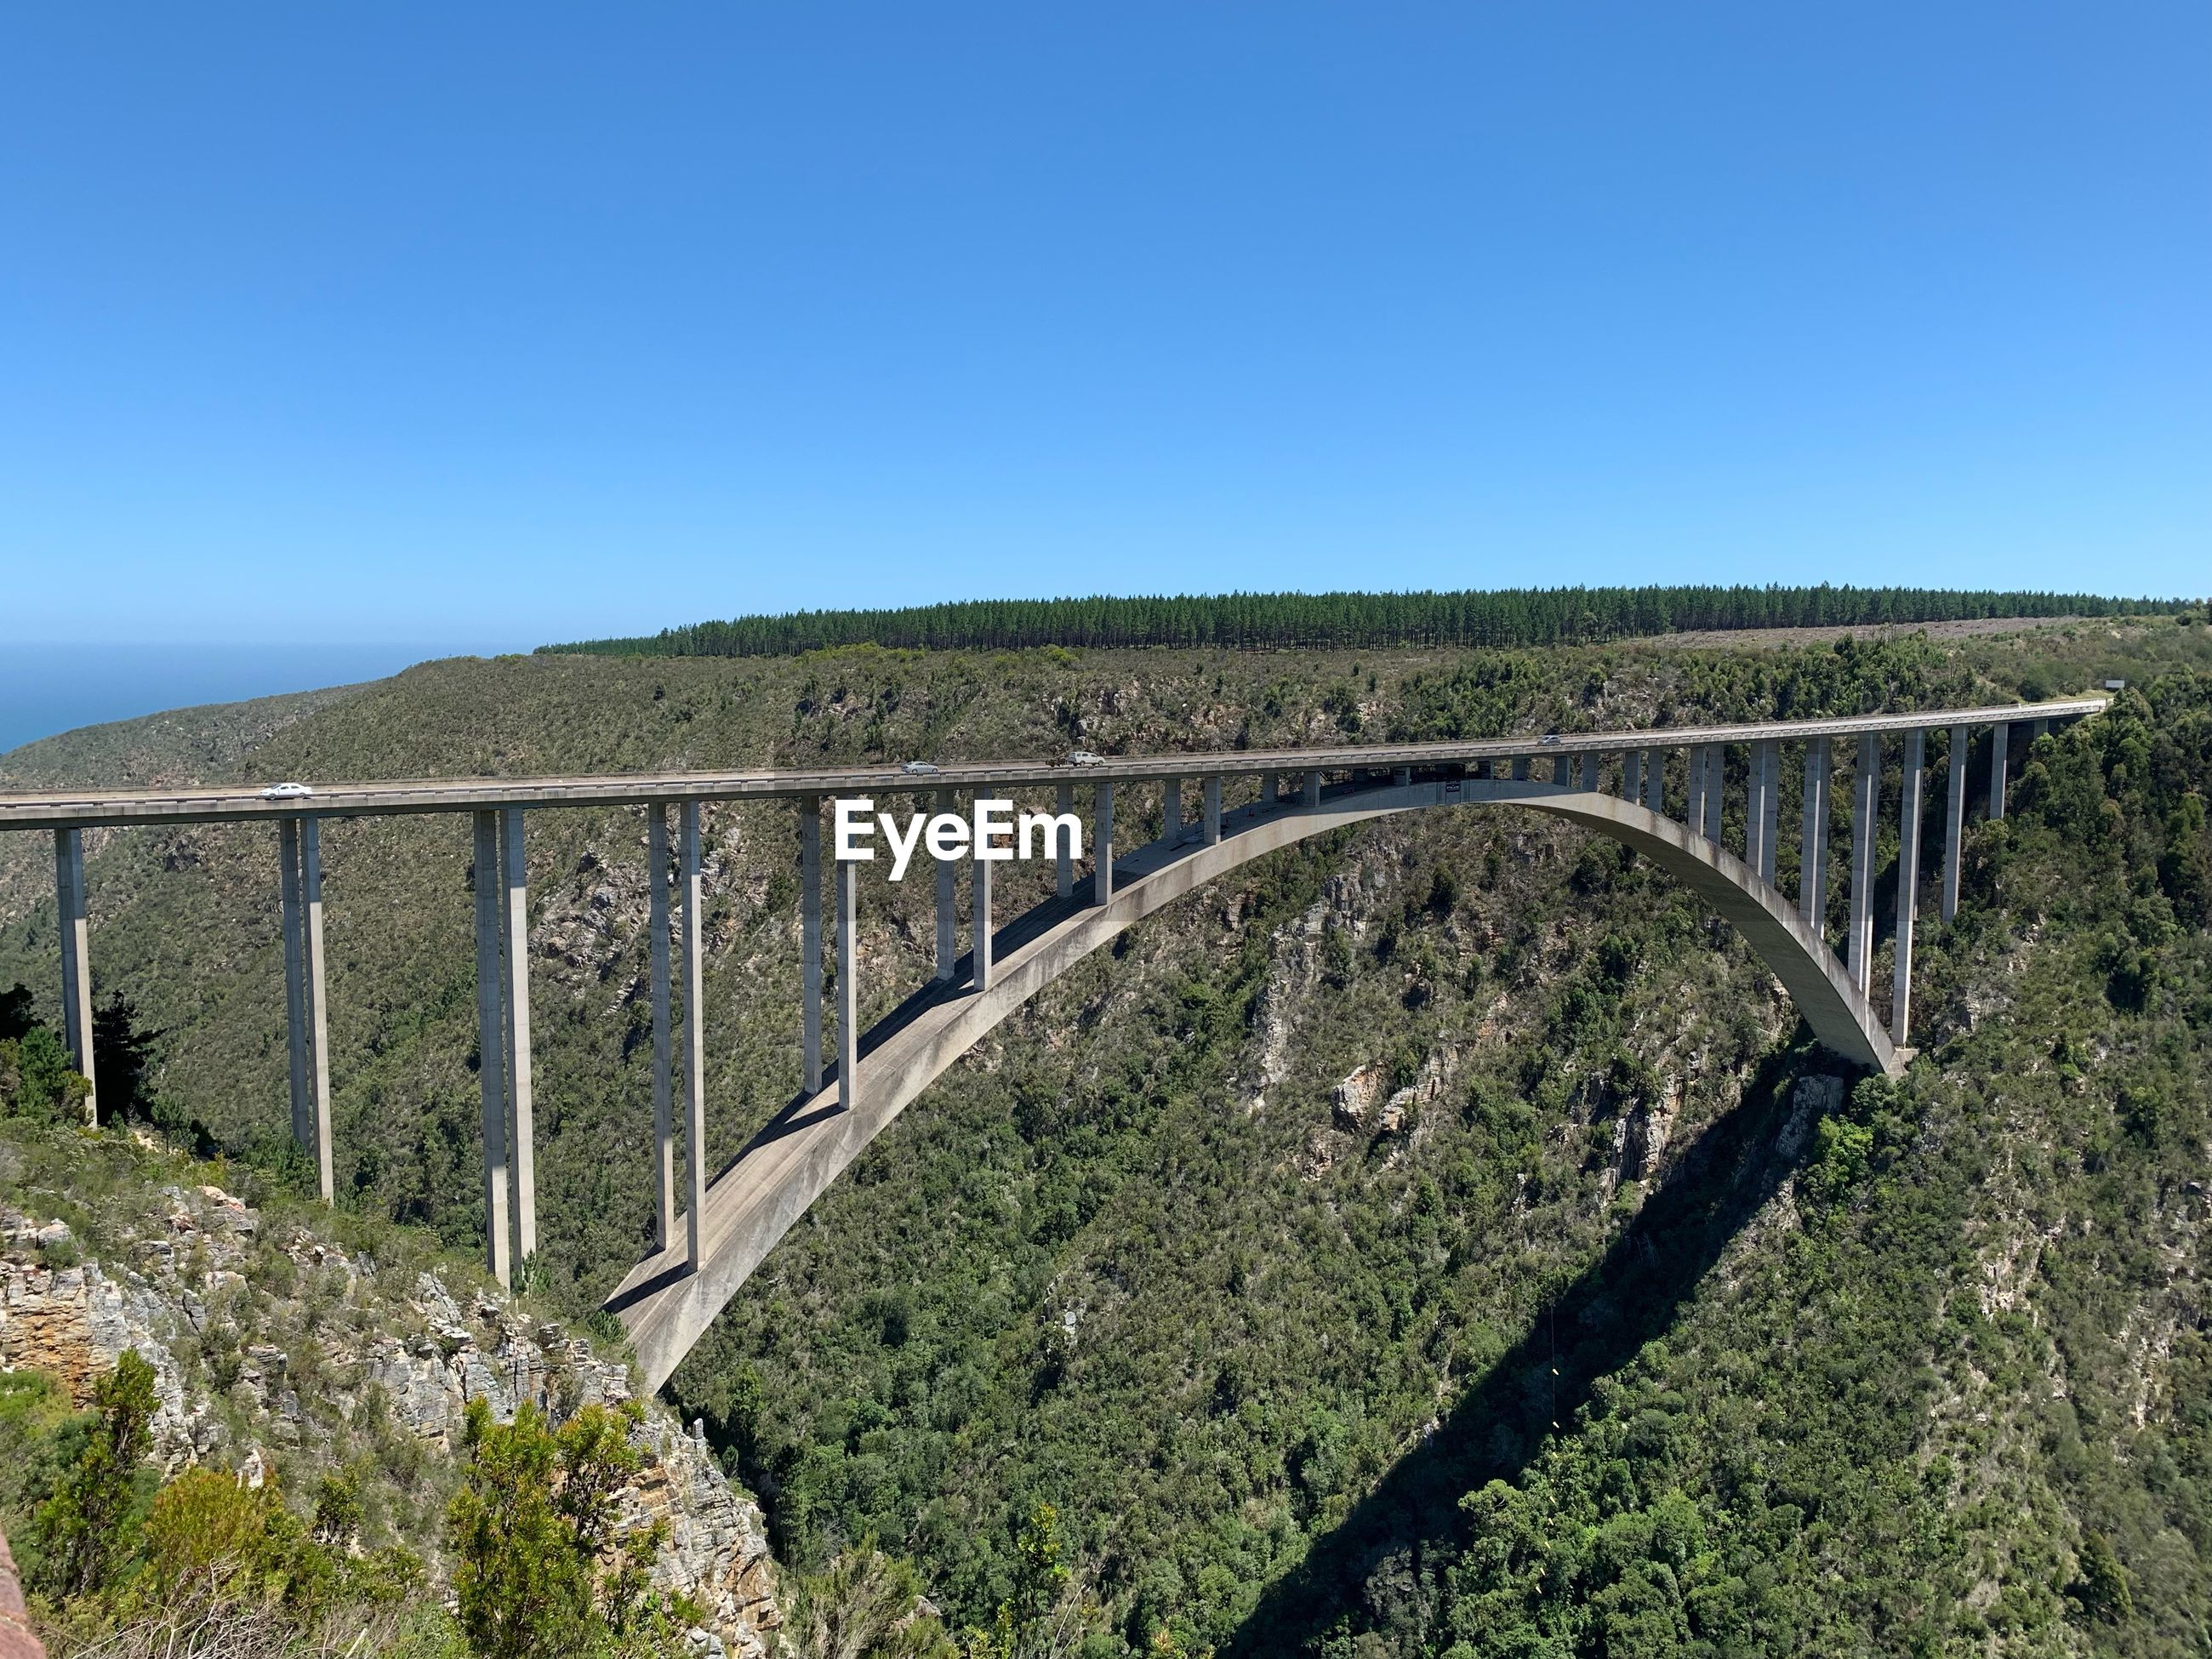 SCENIC VIEW OF BRIDGE AGAINST CLEAR BLUE SKY